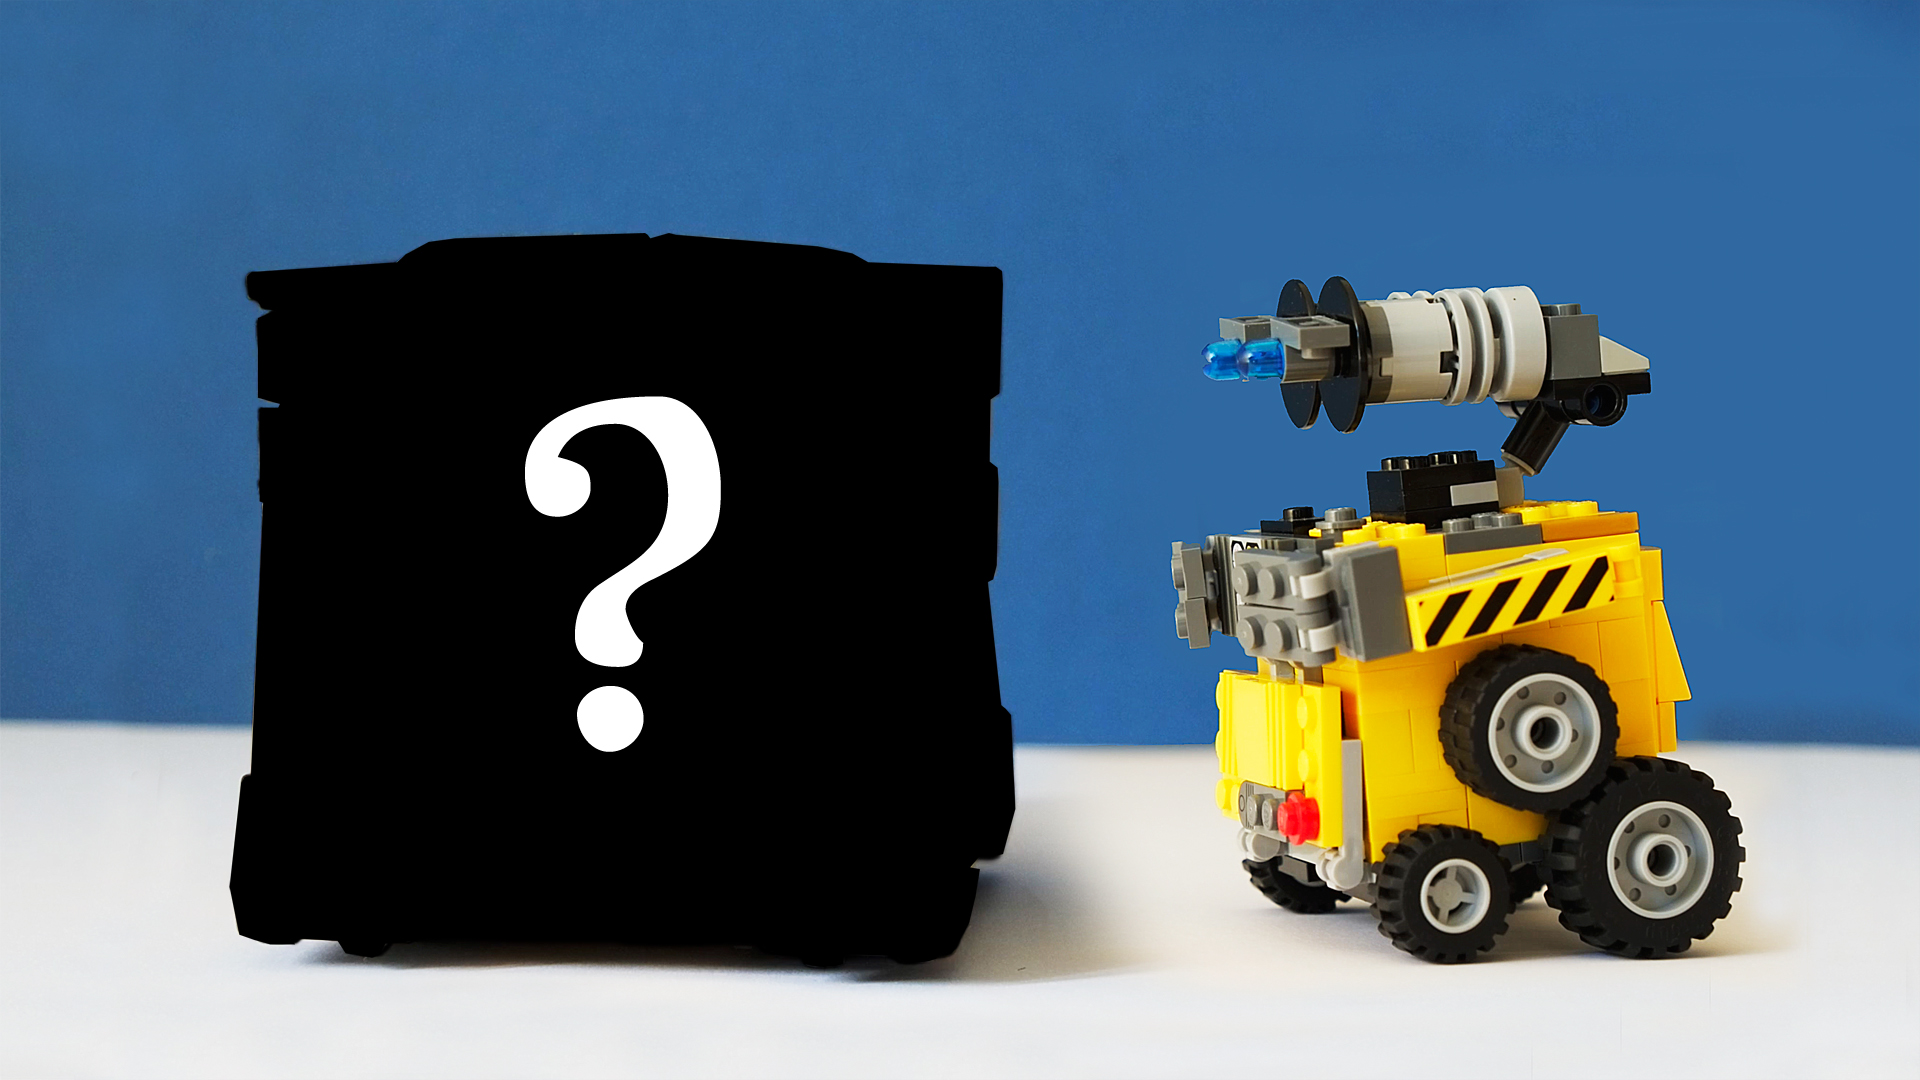 Lego Wall-E and the Giant Cube